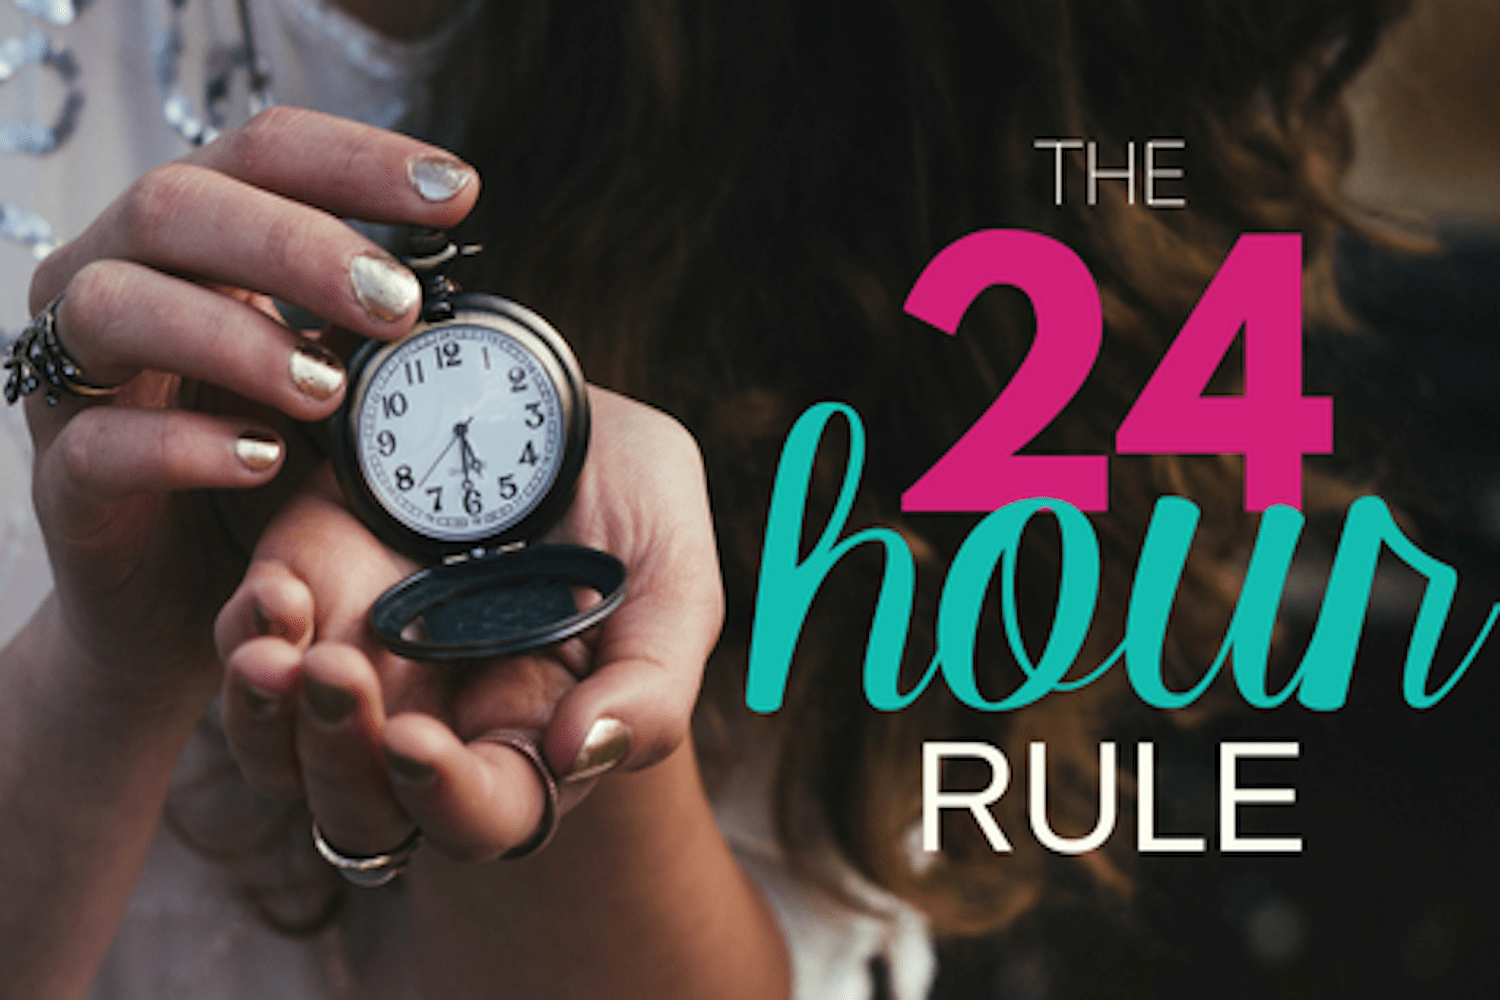 the 24 hour rule - bridezilla article